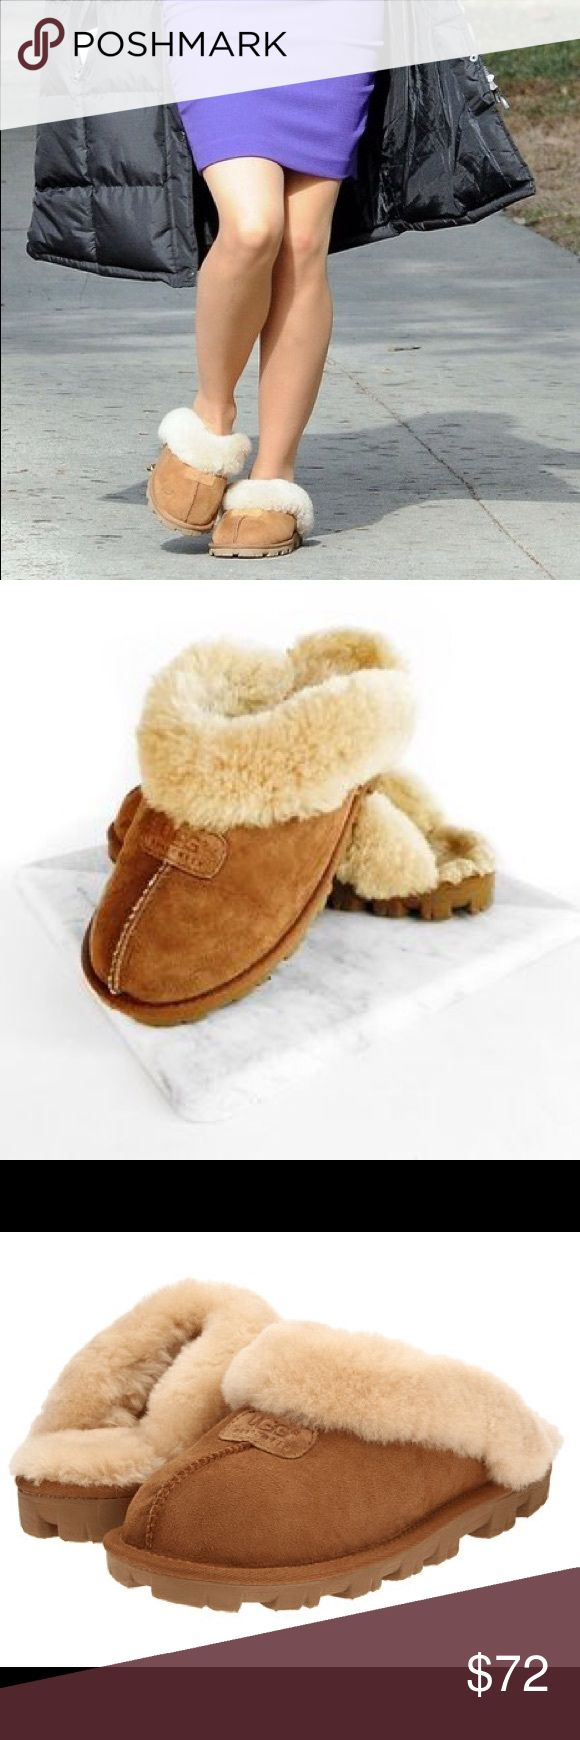 UGG Coquette UGG Coquettes are crafted of 17mm grade A Twinface with a sheepskin cuff for additional warmth. Easy slip-on style. Luxurious shearling lining for comfort and warmth.Genuine sheepskin sockliner wicks moisture away and allows air to circulate, keeping feet dry. Blown EVA molded outsole. Only worn once😁 UGG Shoes Slippers